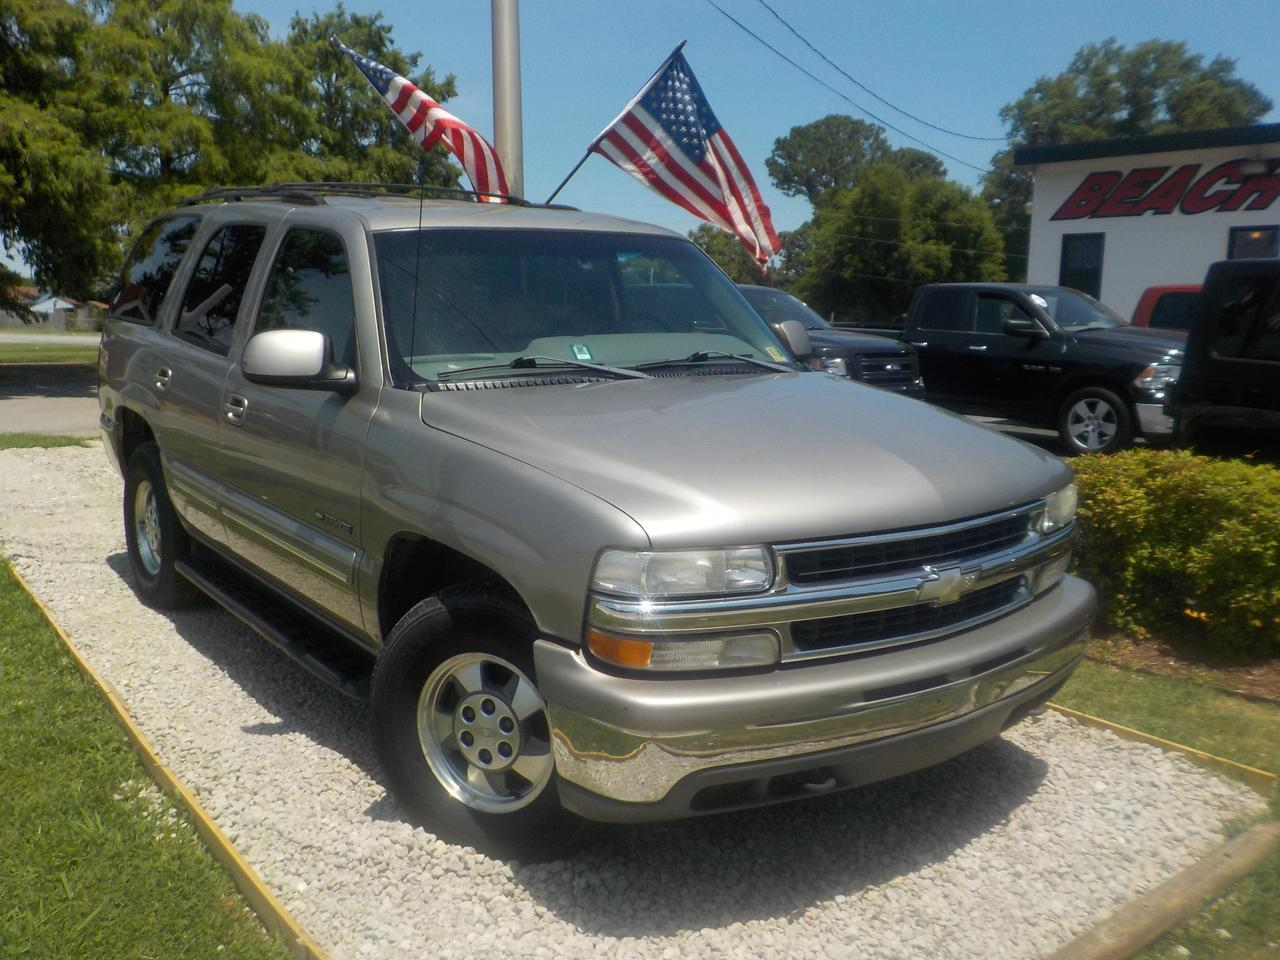 2001 CHEVROLET TAHOE LT 4X4, WHOLESALE TO THE PUBLIC! GET IT BEFORE IT GOES TO AUCTION! 3RD ROW, LEATHER, HEATED SEATS!